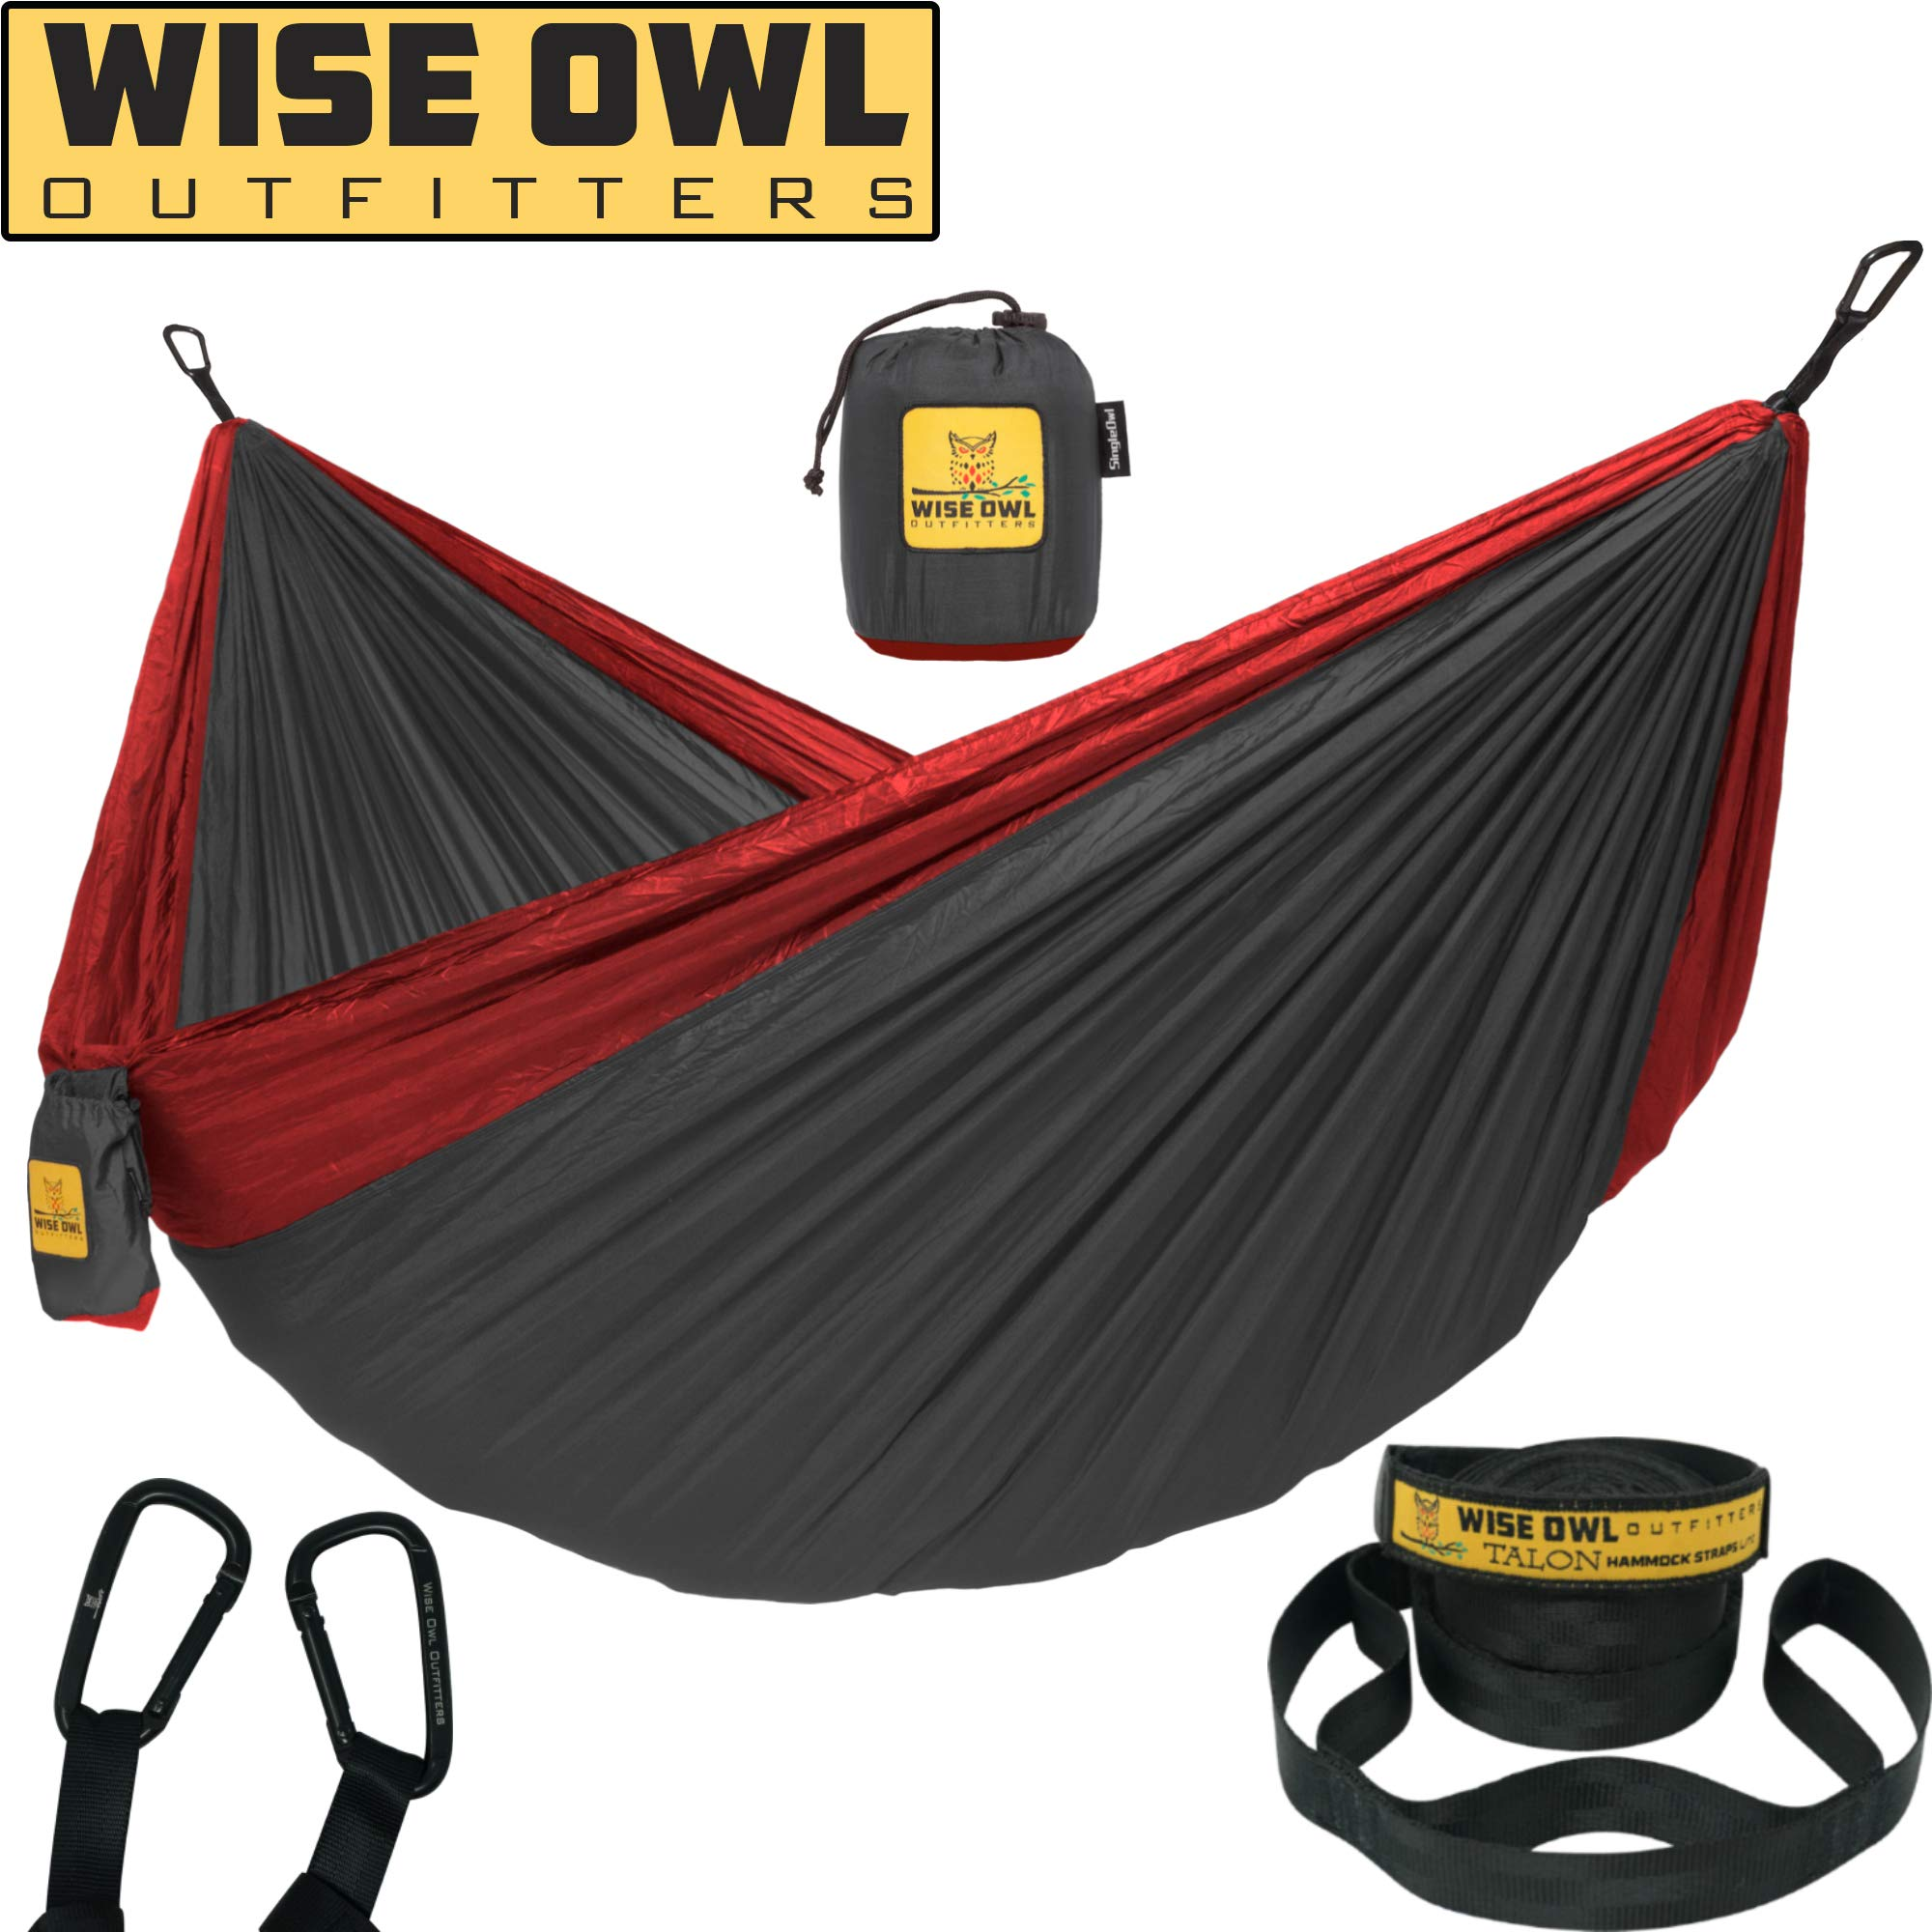 Wise Owl Outfitters Hammock Camping Double & Single with Tree Straps - USA Based Hammocks Brand Gear, Indoor Outdoor Backpacking Survival & Travel, Portable SO Ch/Red